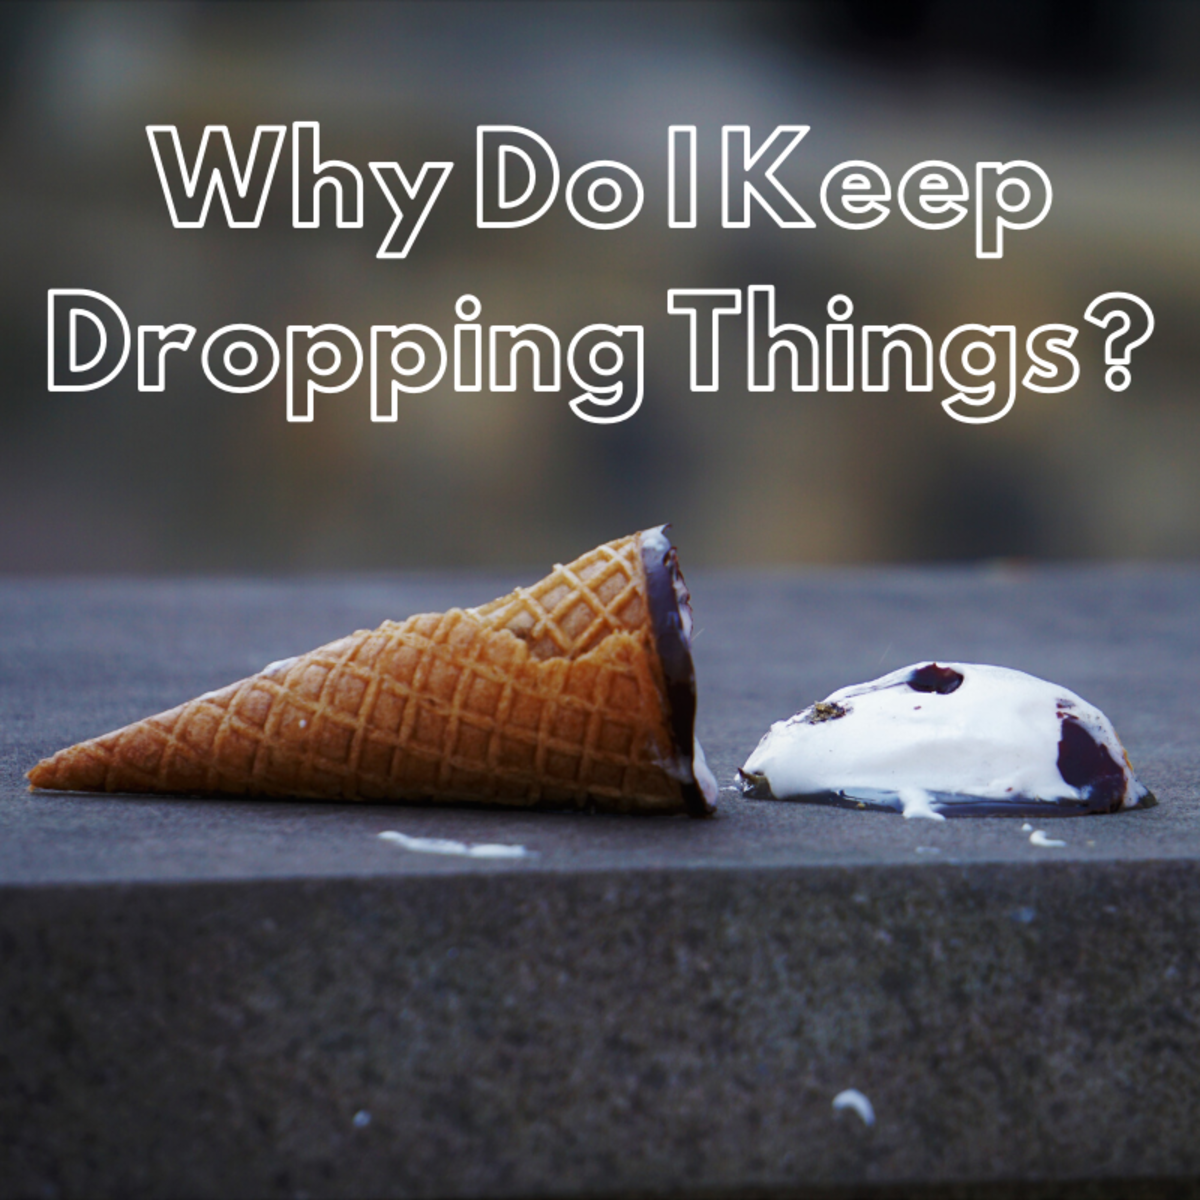 People drop things for a variety of reasons. Some of the more common causes are discussed here.